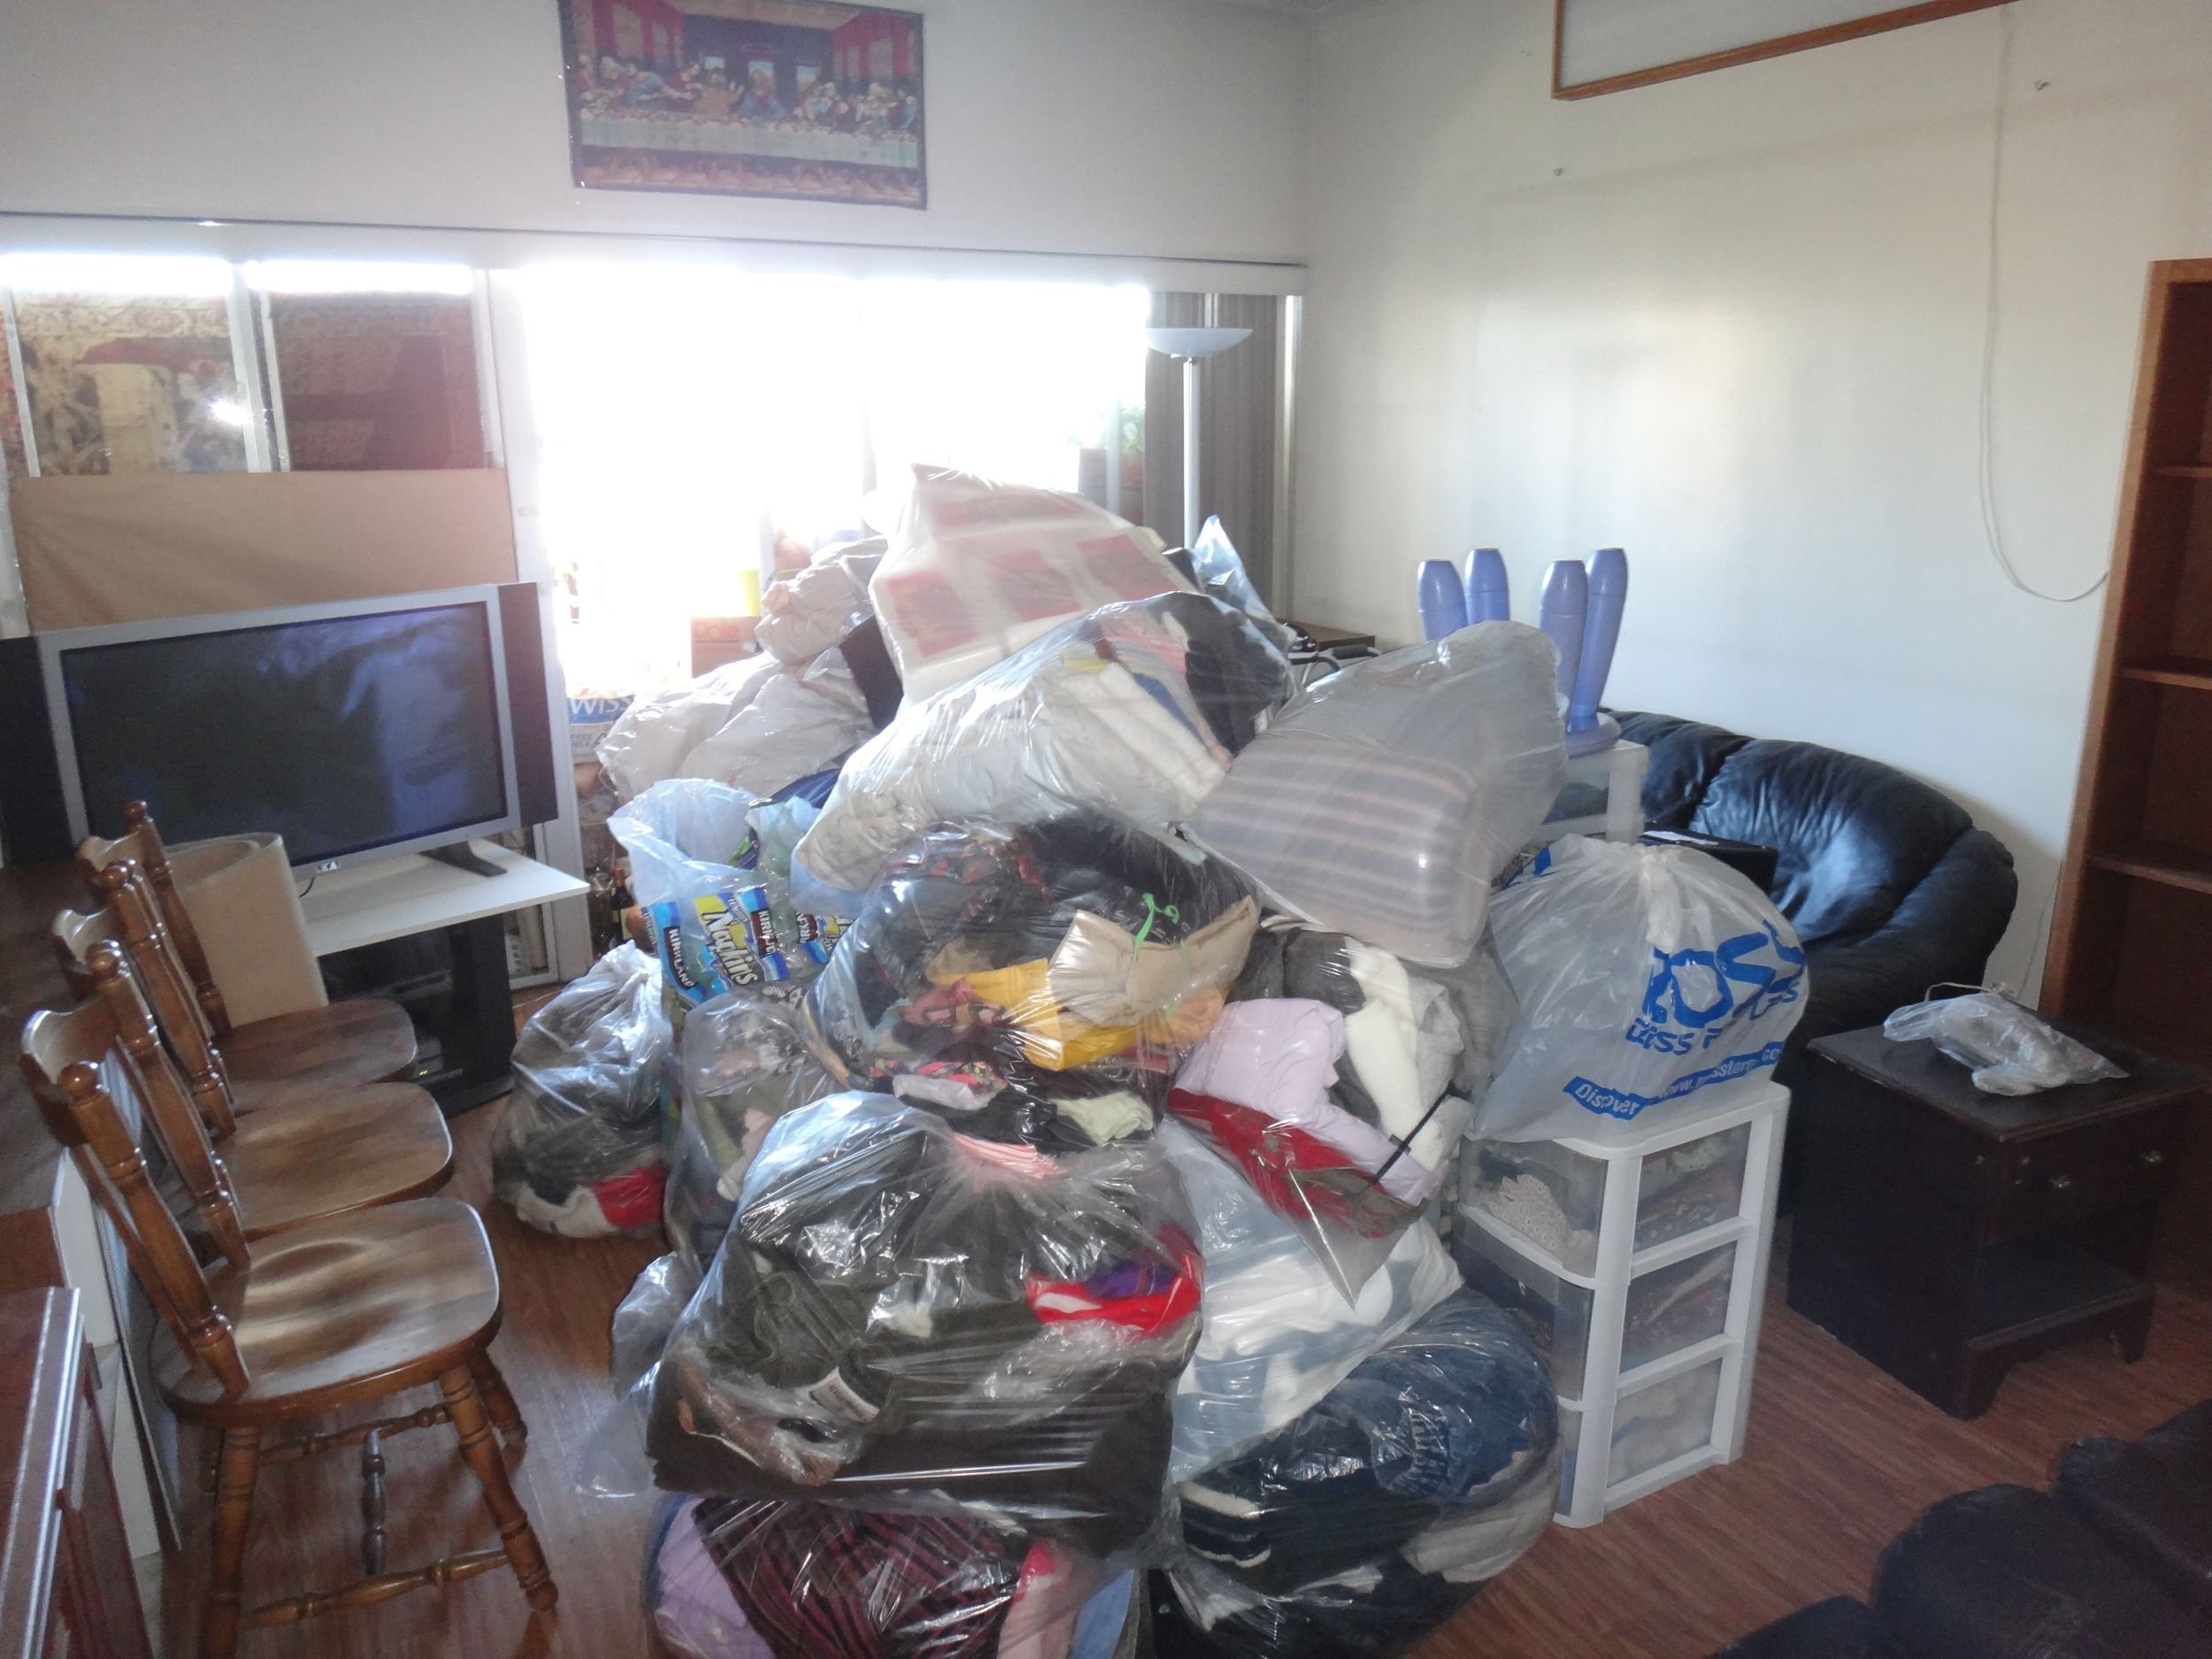 Clutter sorted, bagged and prepped for treatment.